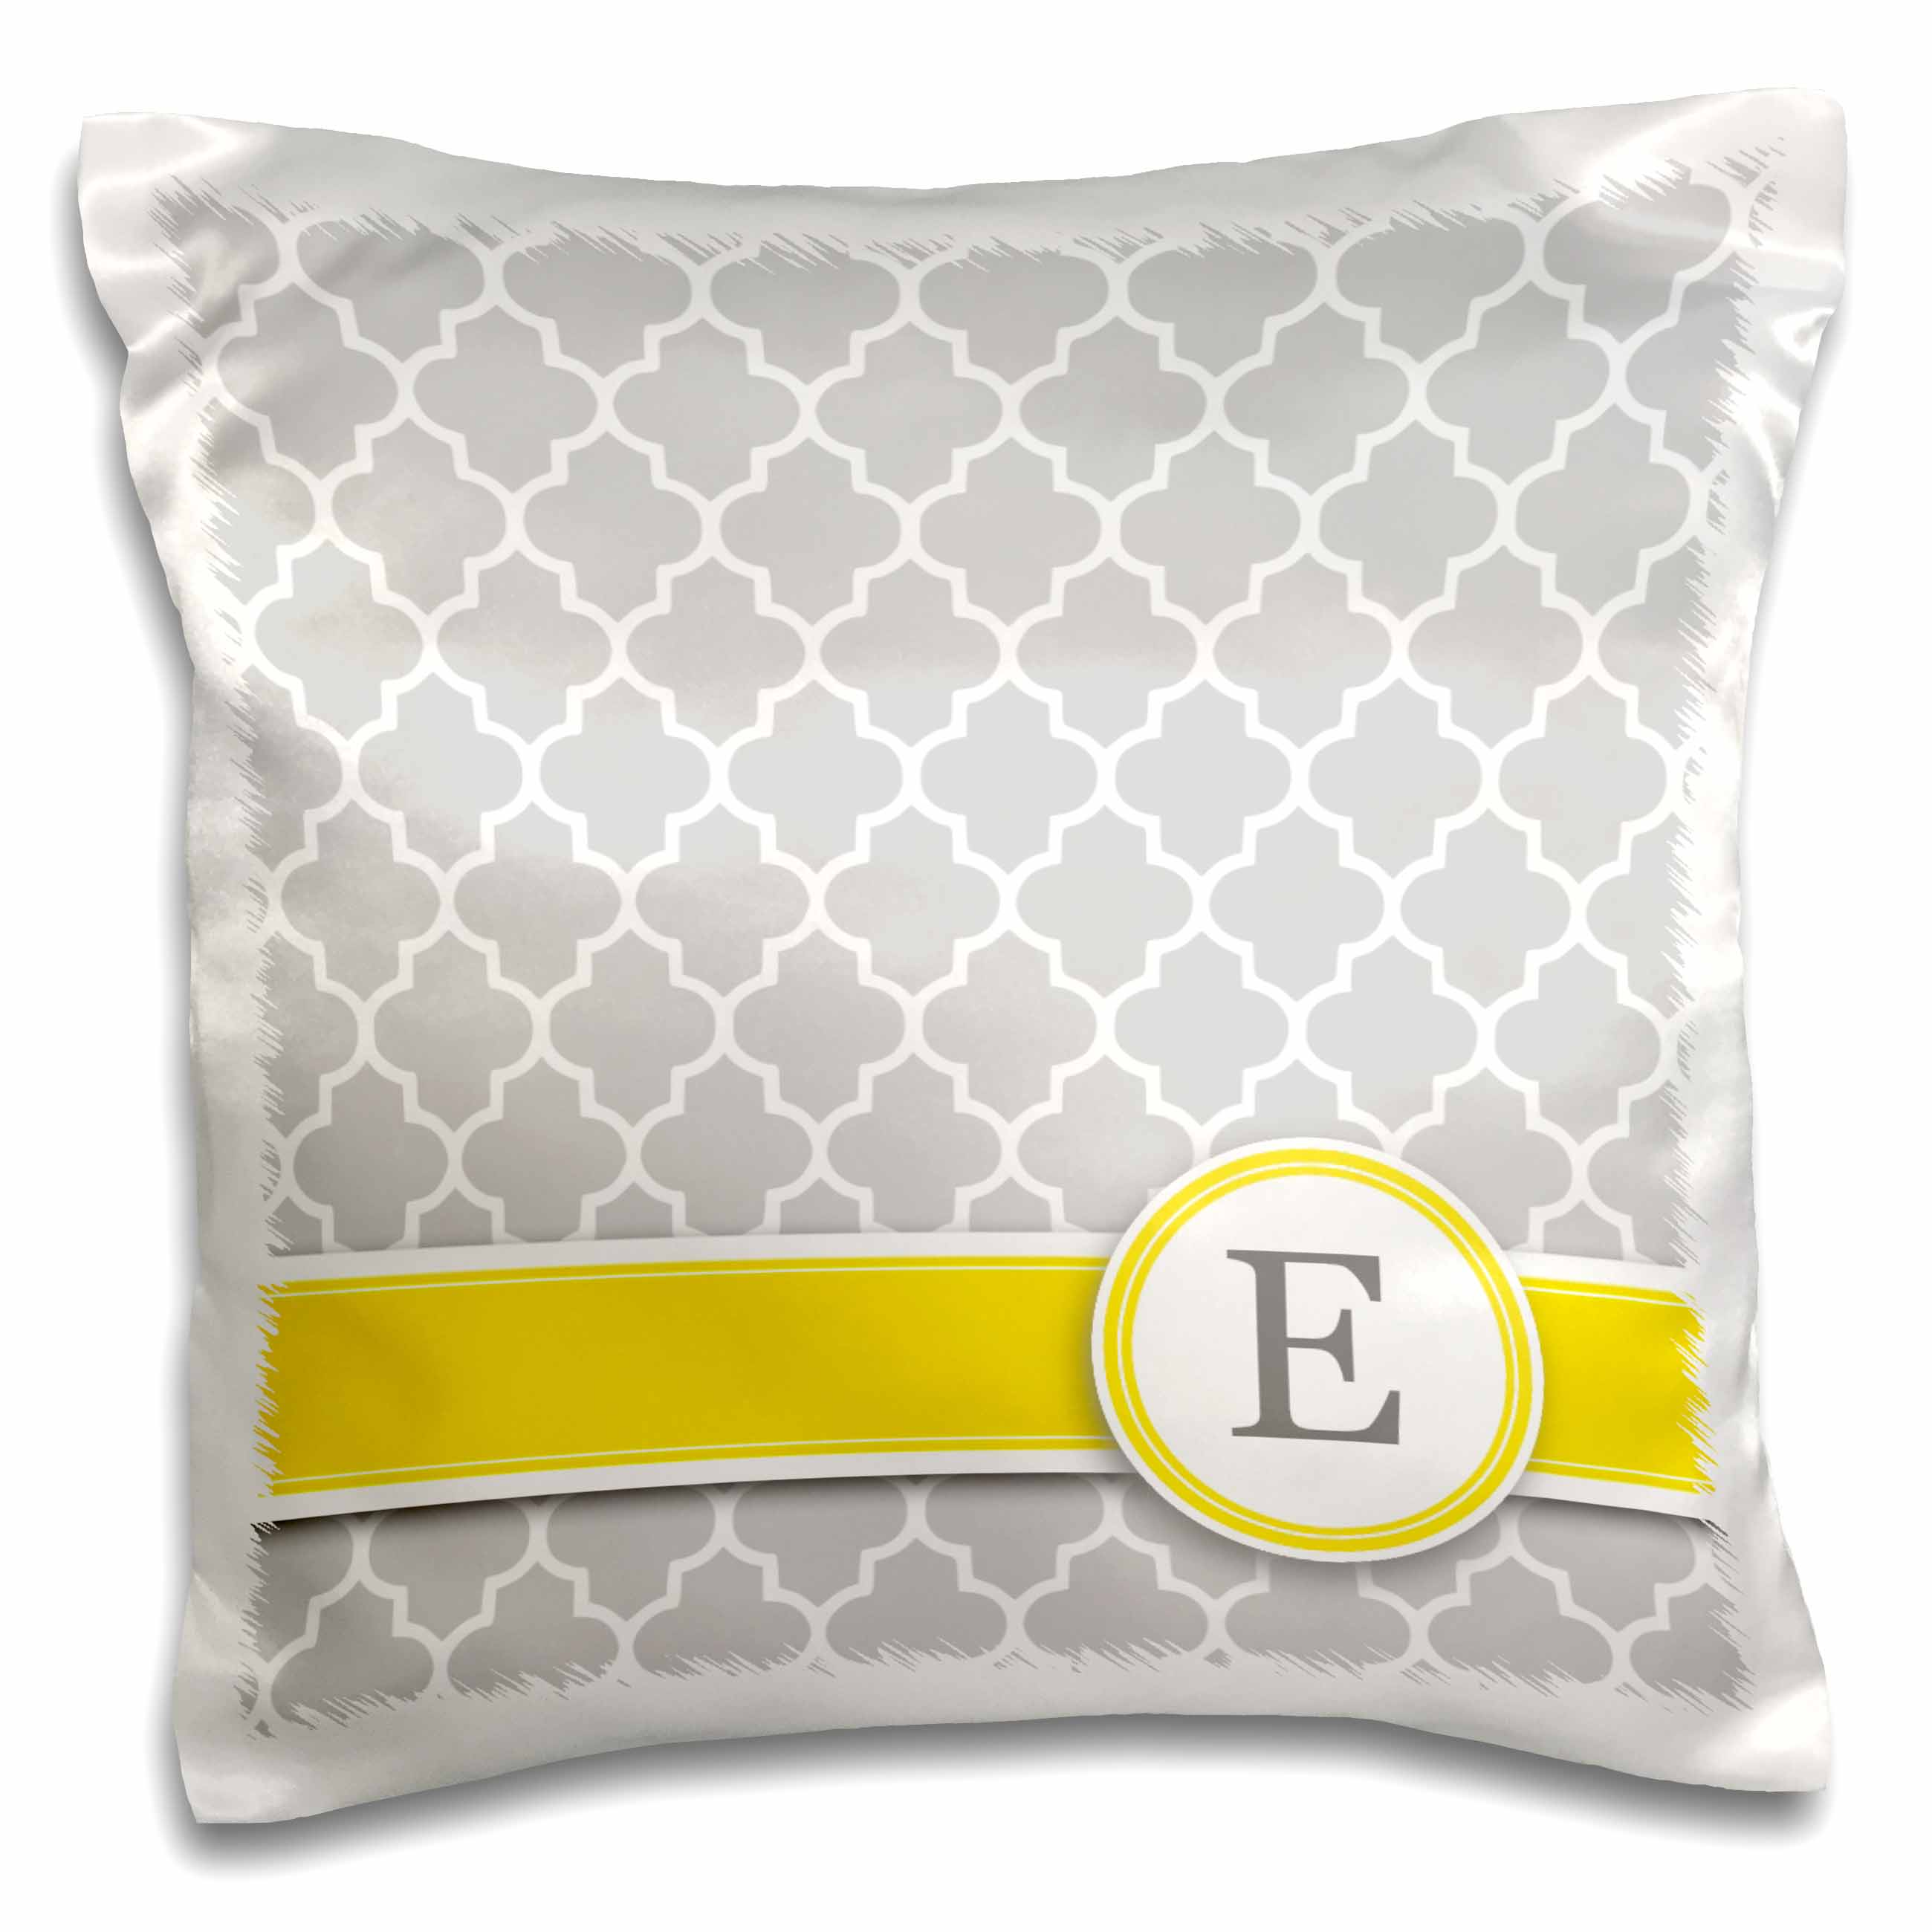 3dRose Your personal name initial letter E - monogrammed grey quatrefoil pattern - personalized yellow gray, Pillow Case, 16 by 16-inch